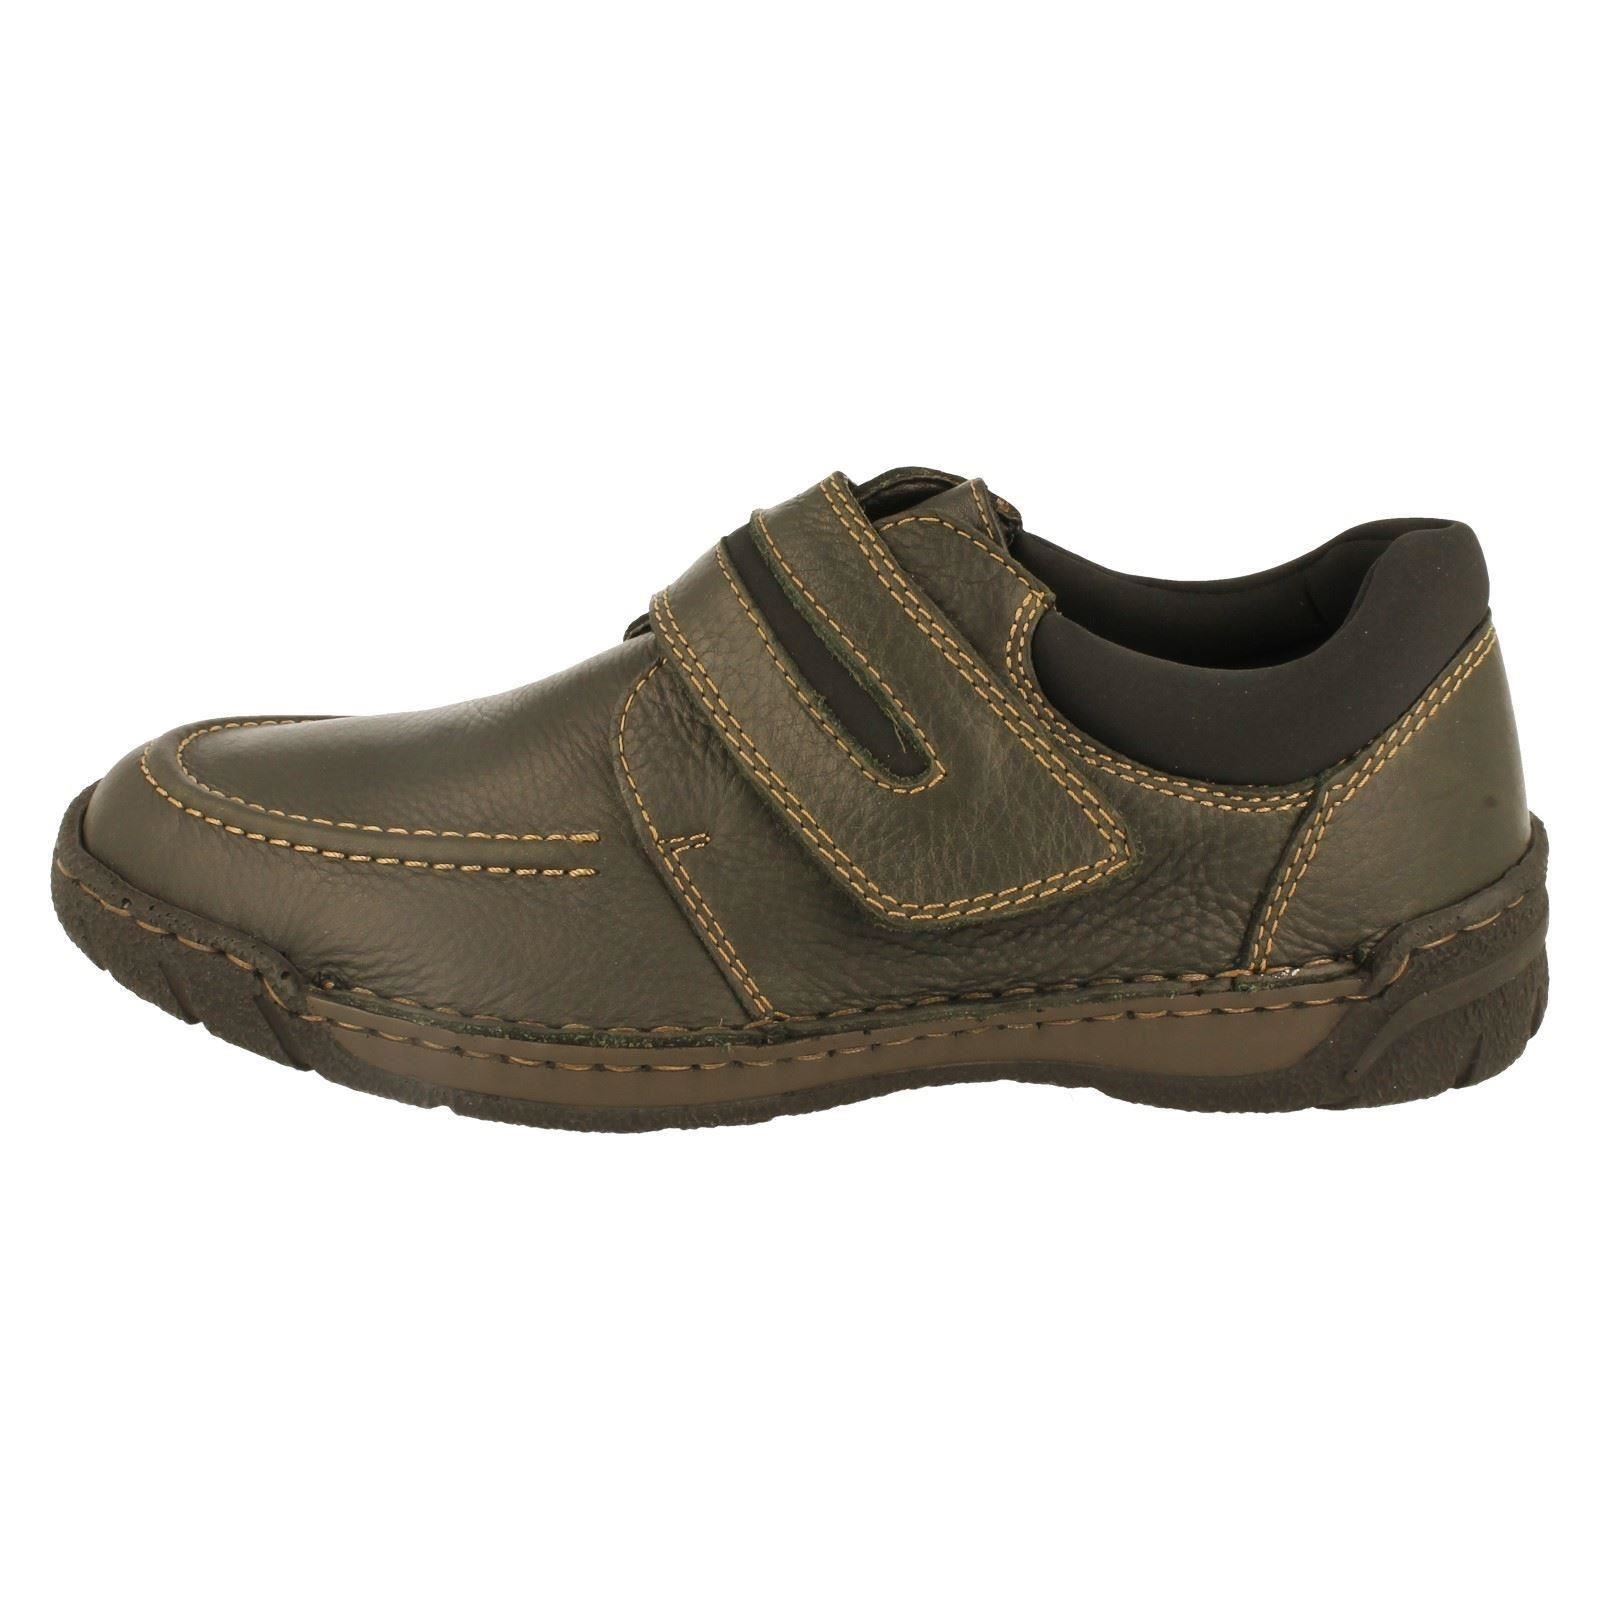 Mens Rieker Shoes The style B0352-W